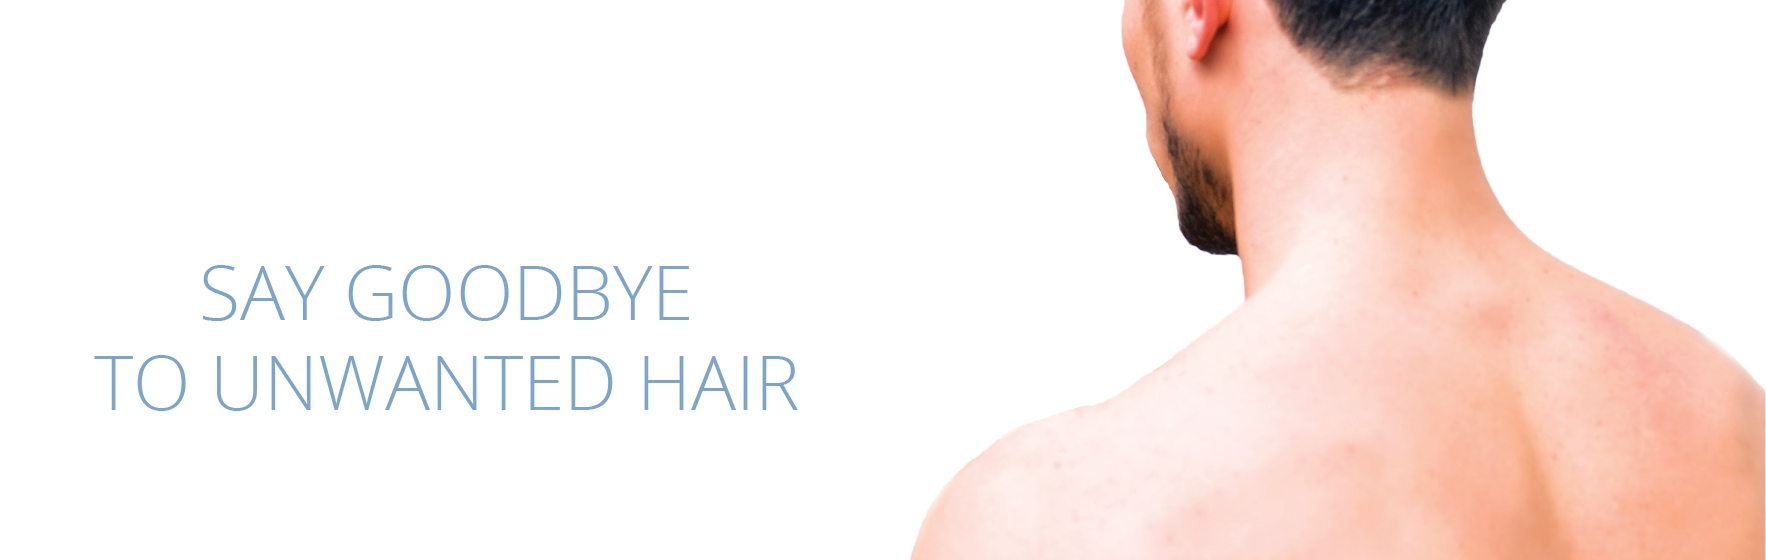 SAY HELLO TO LASER HAIR REMOVAL -